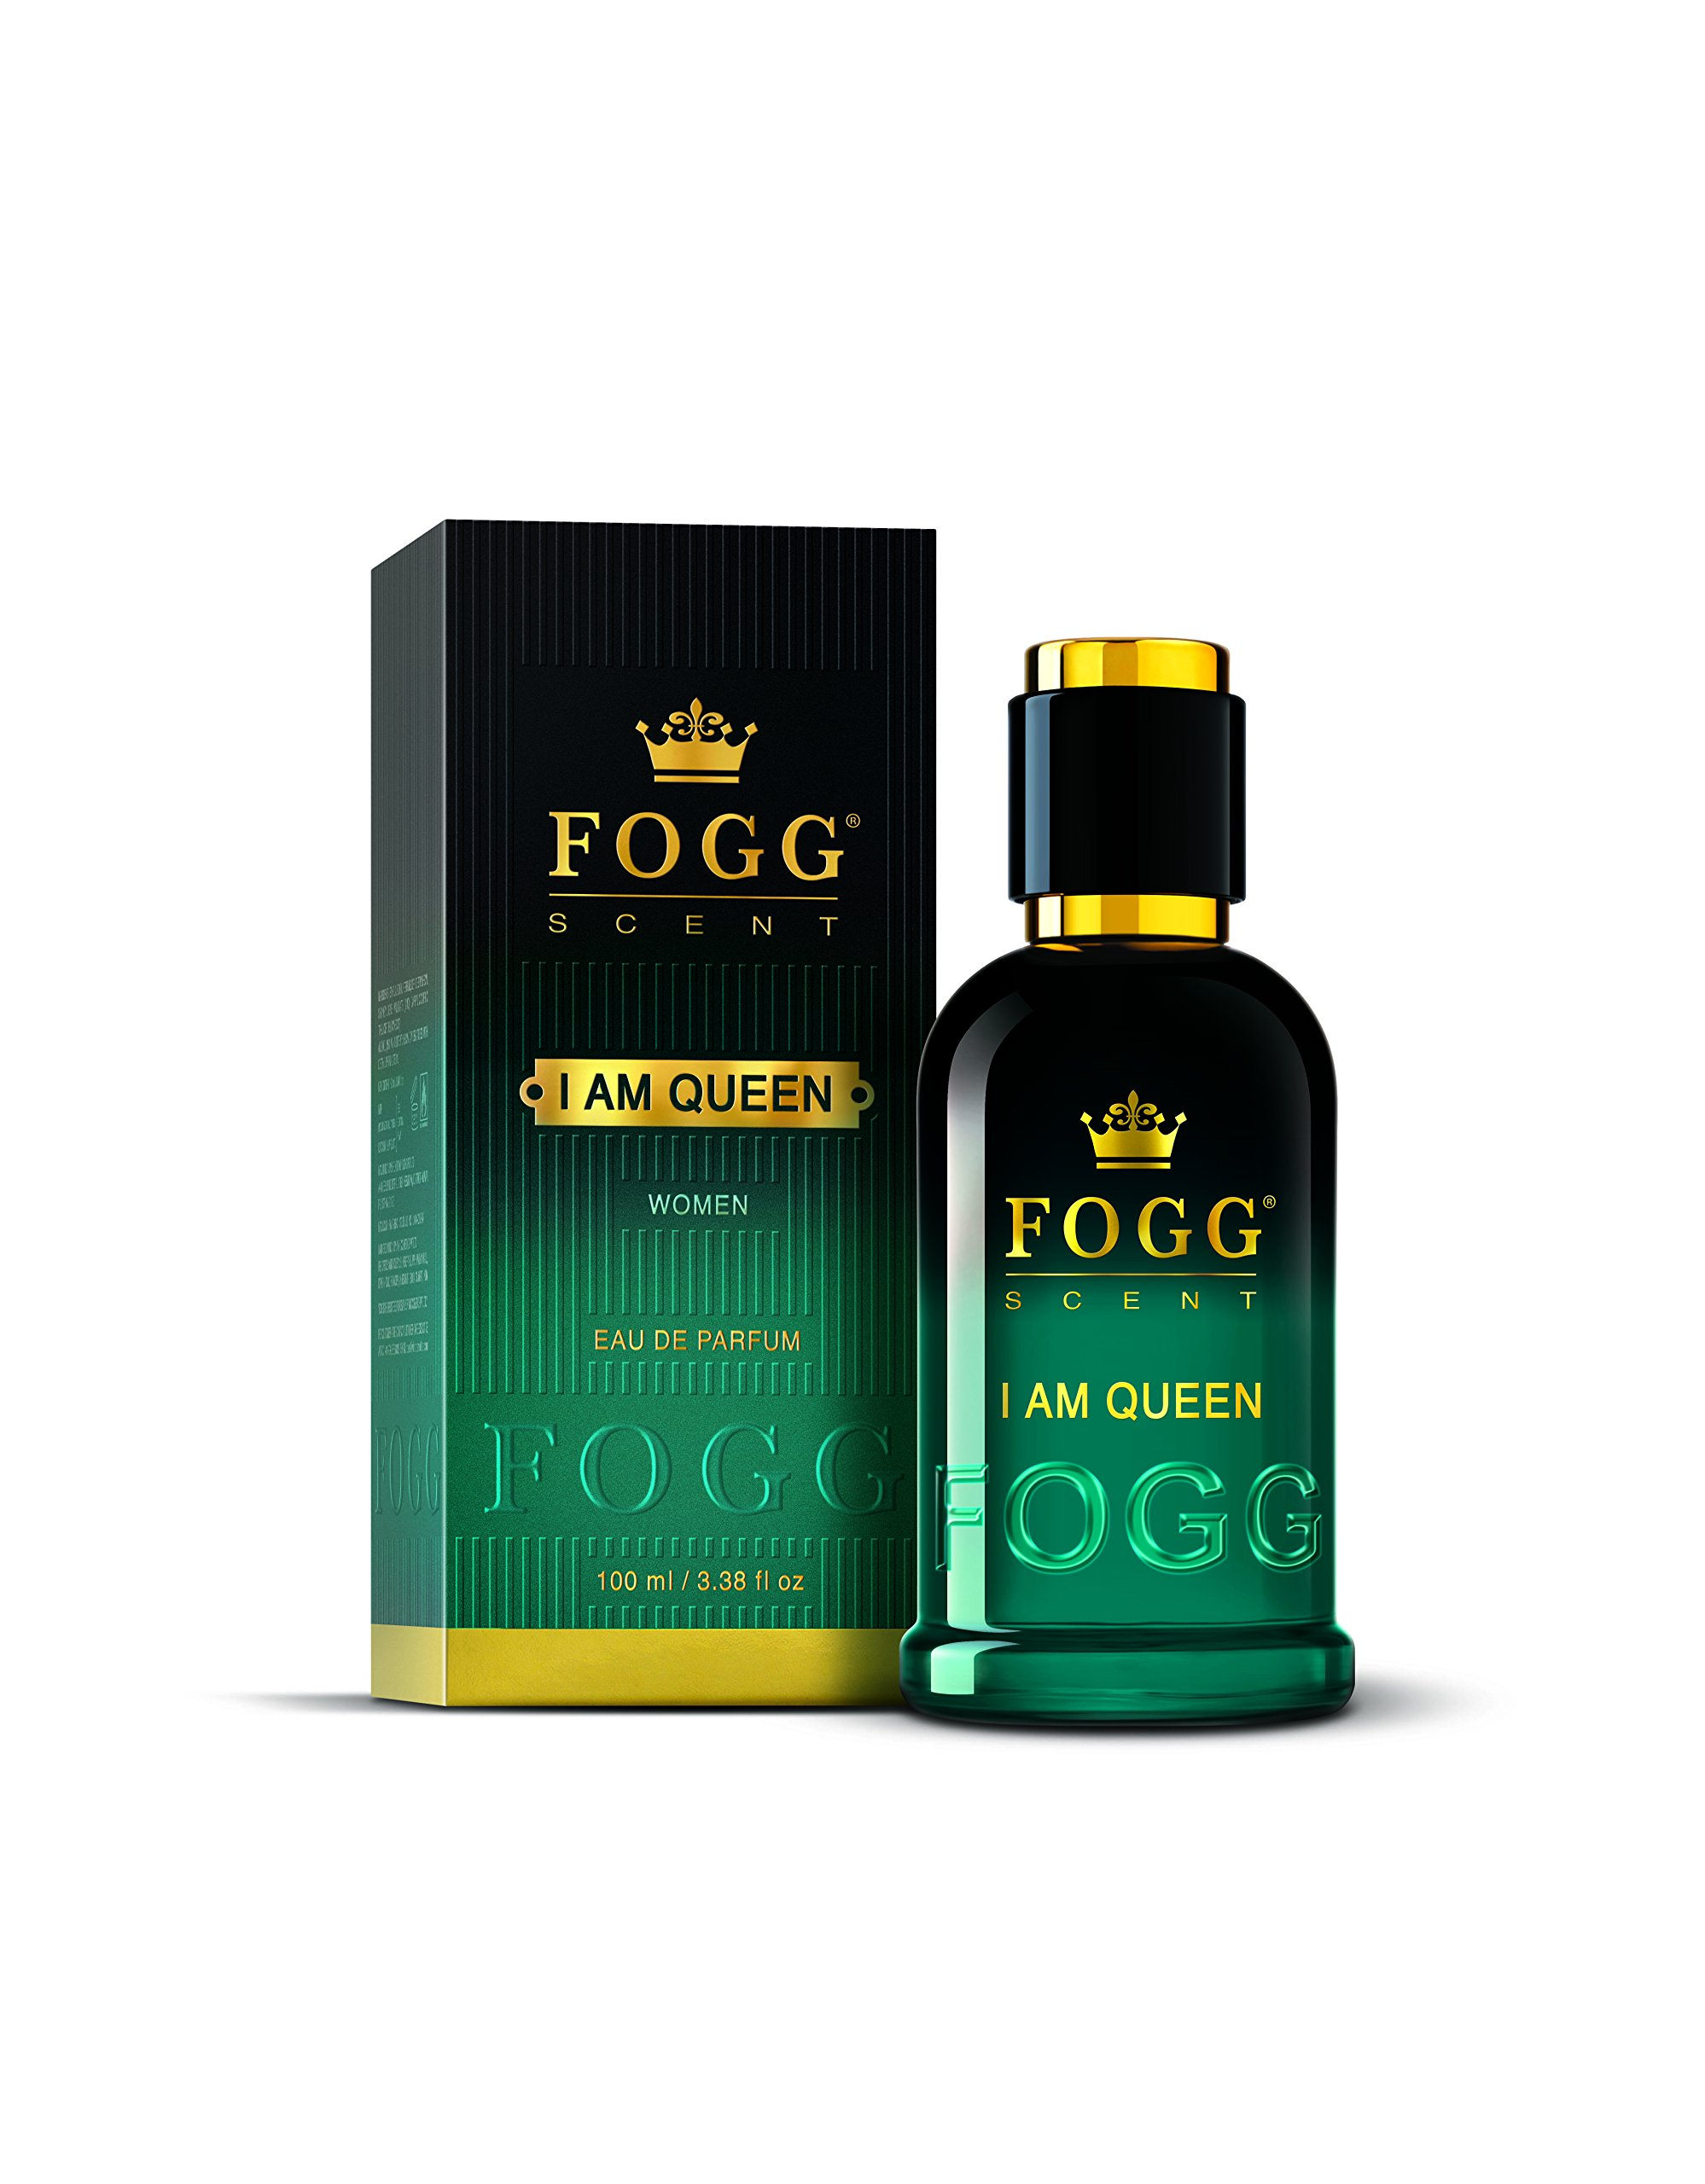 Fogg I Am Queen Scent For Women, 100ml product image